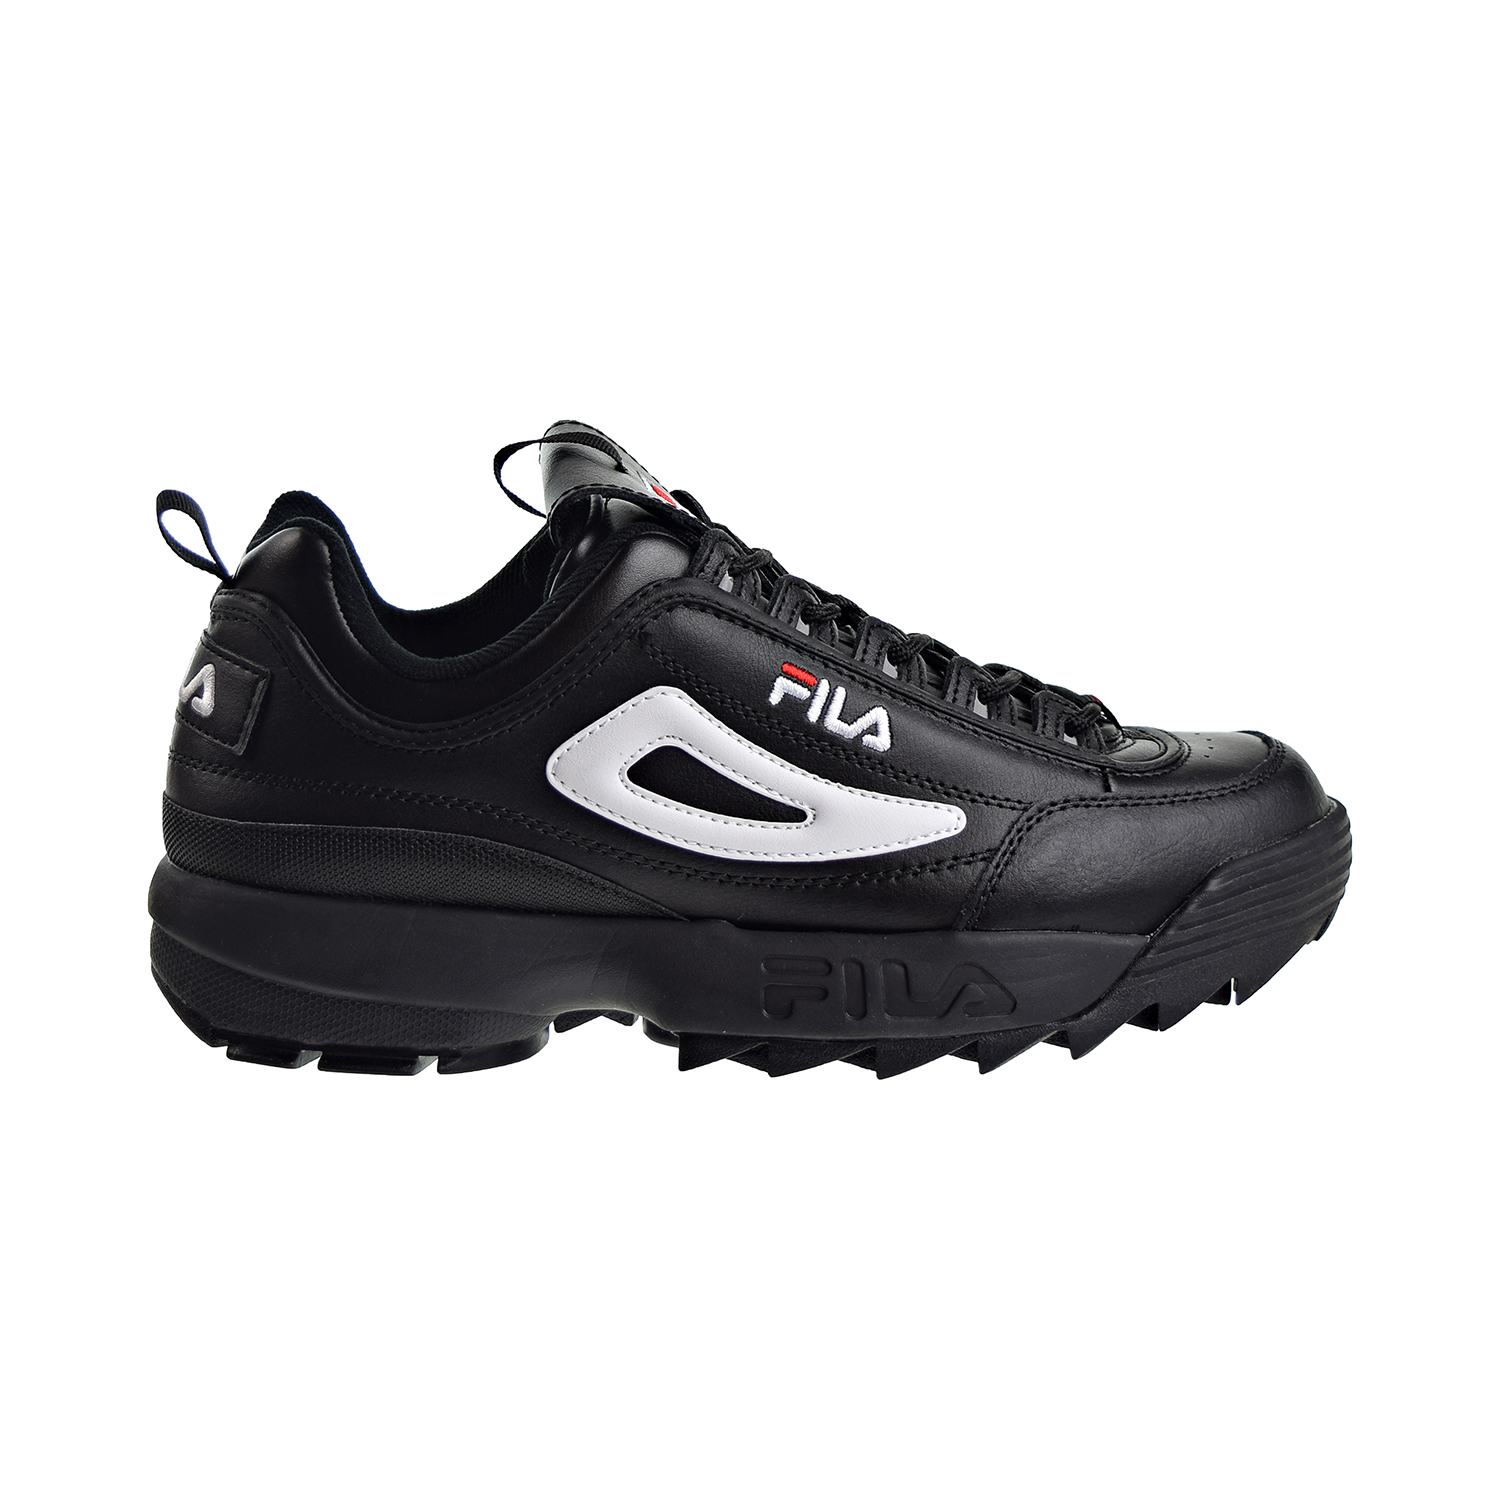 Details about Fila Disruptor II Premium Mens Shoes Black White Red 1FM00139 014